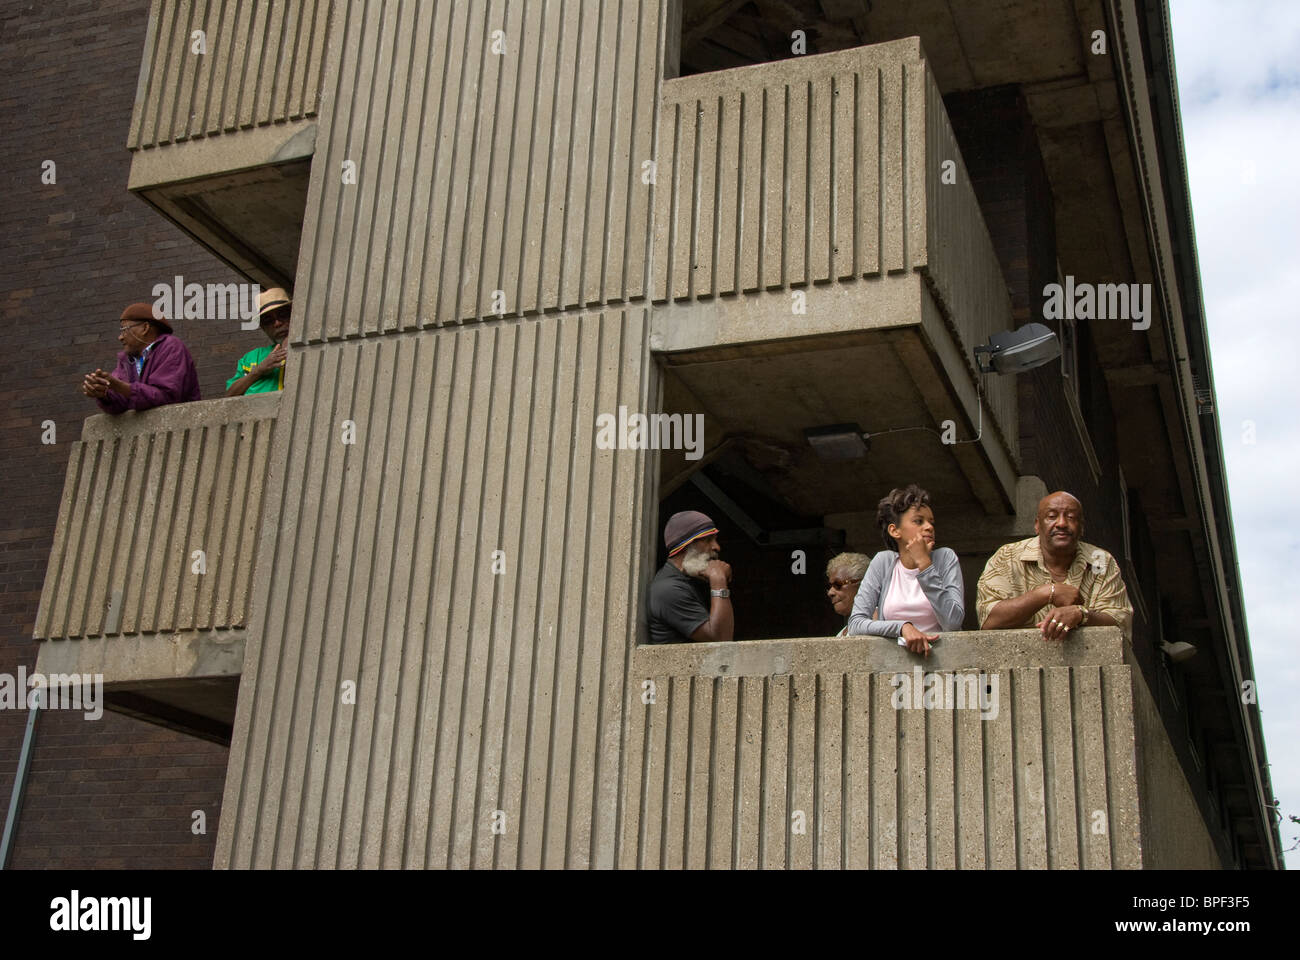 Residents in West London housing estate on their balconies watching Notting hill carnival going by. - Stock Image